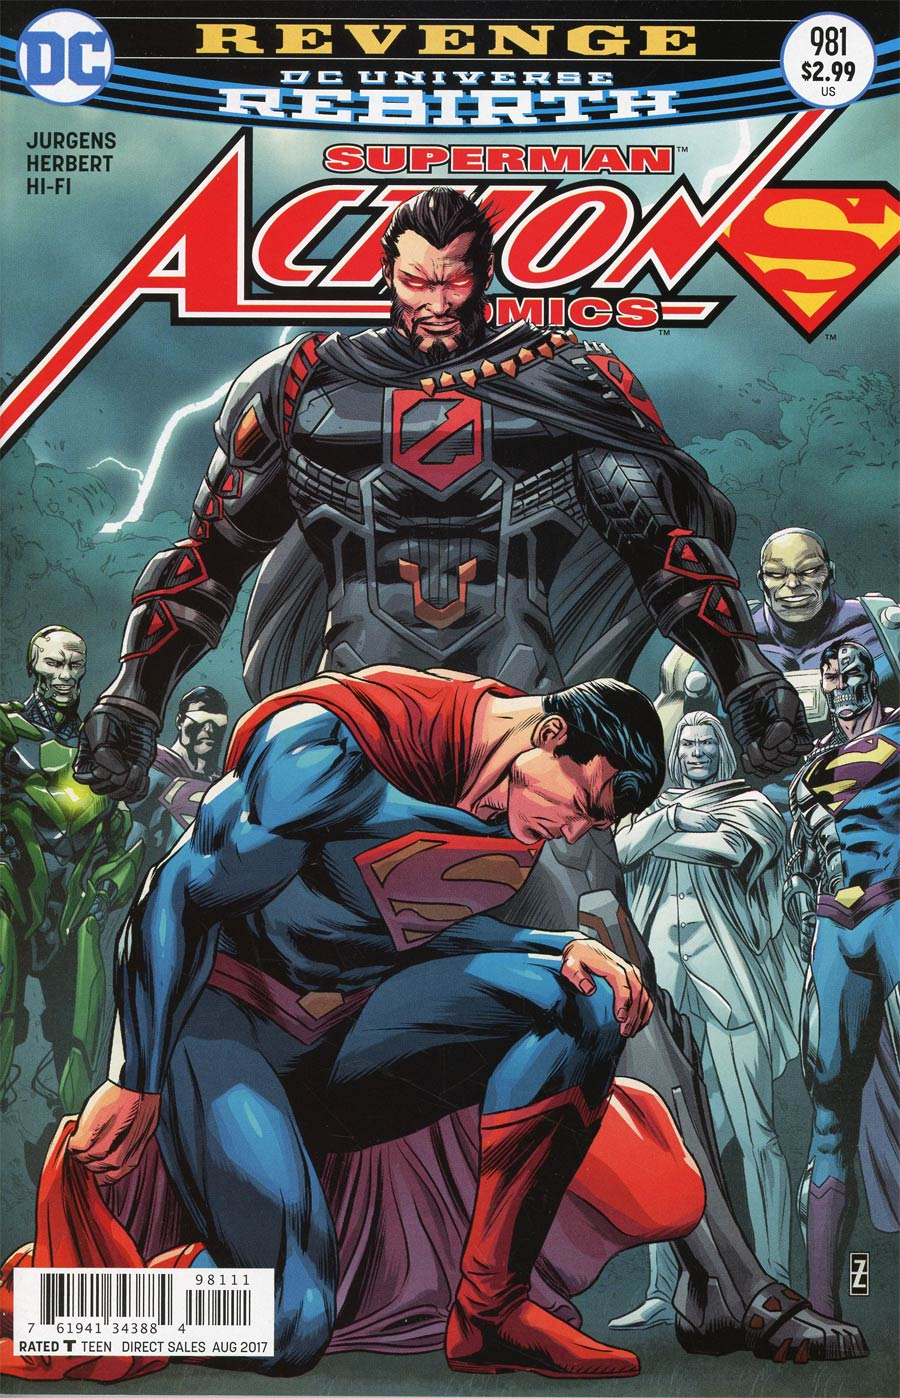 Action Comics Vol 2 #981 Cover A Regular Patrick Zircher Cover